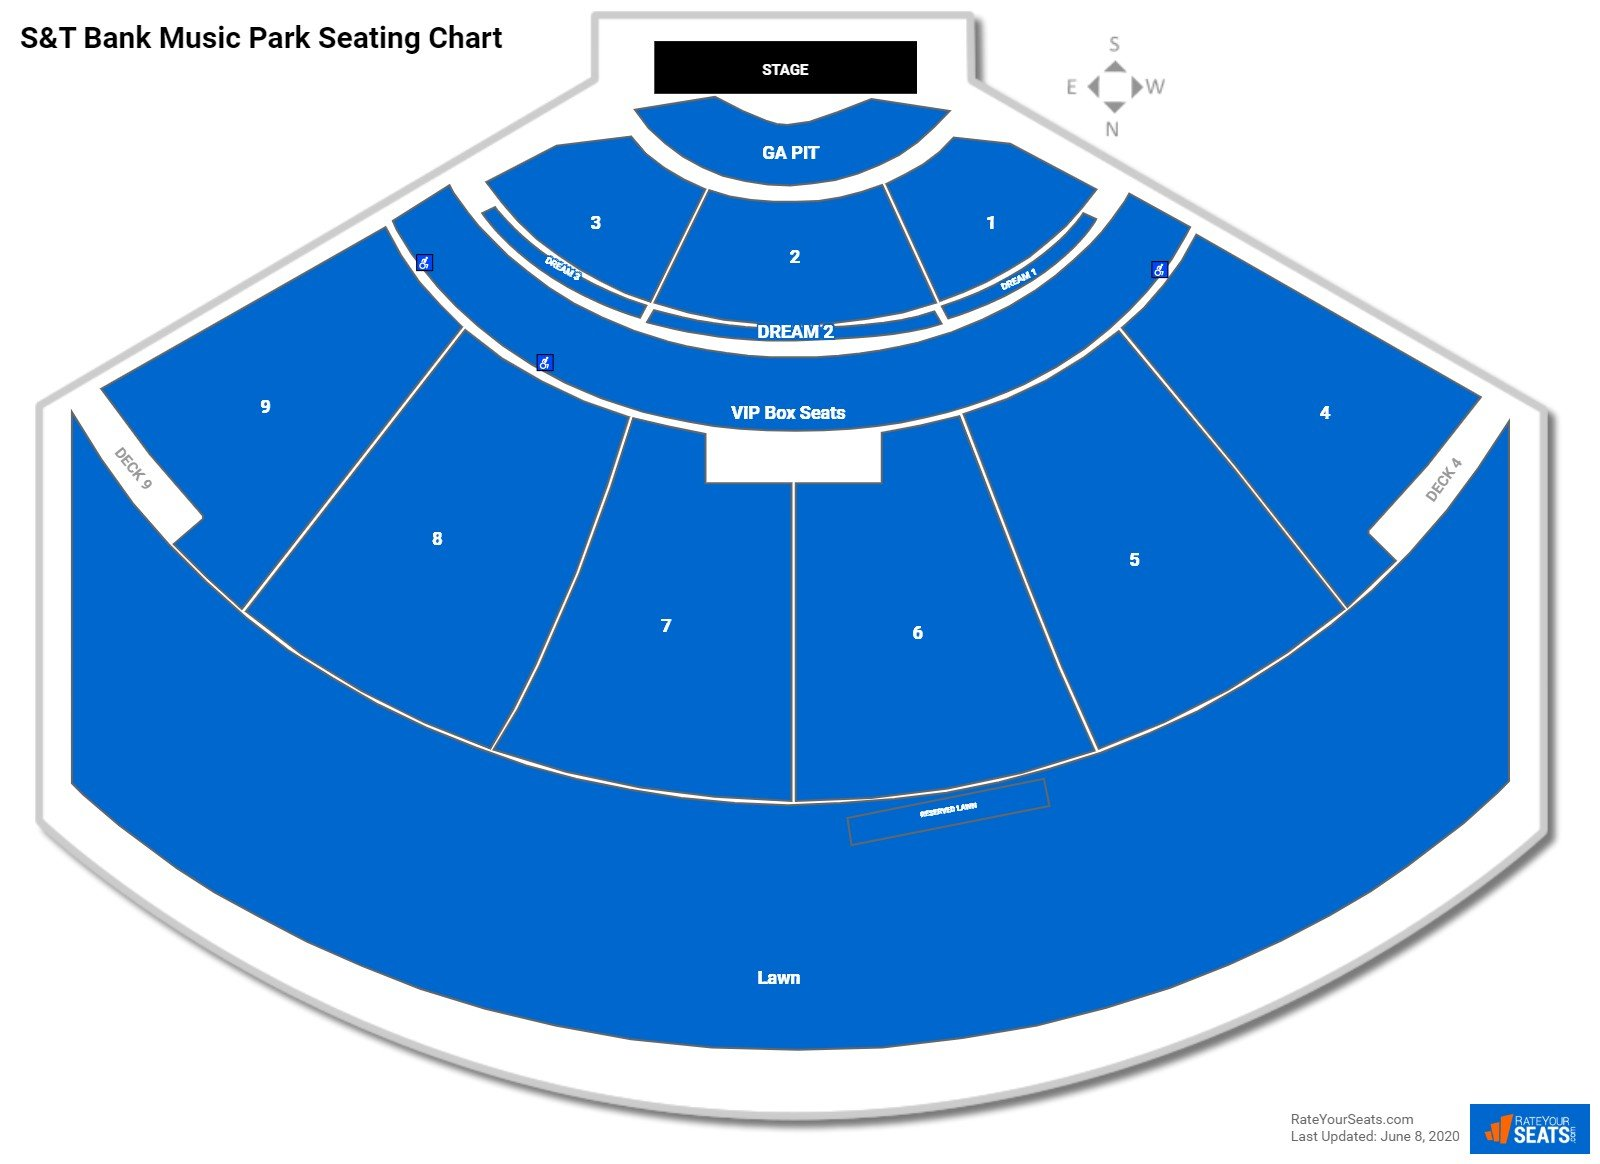 The Pavilion at Star Lake Seating Chart